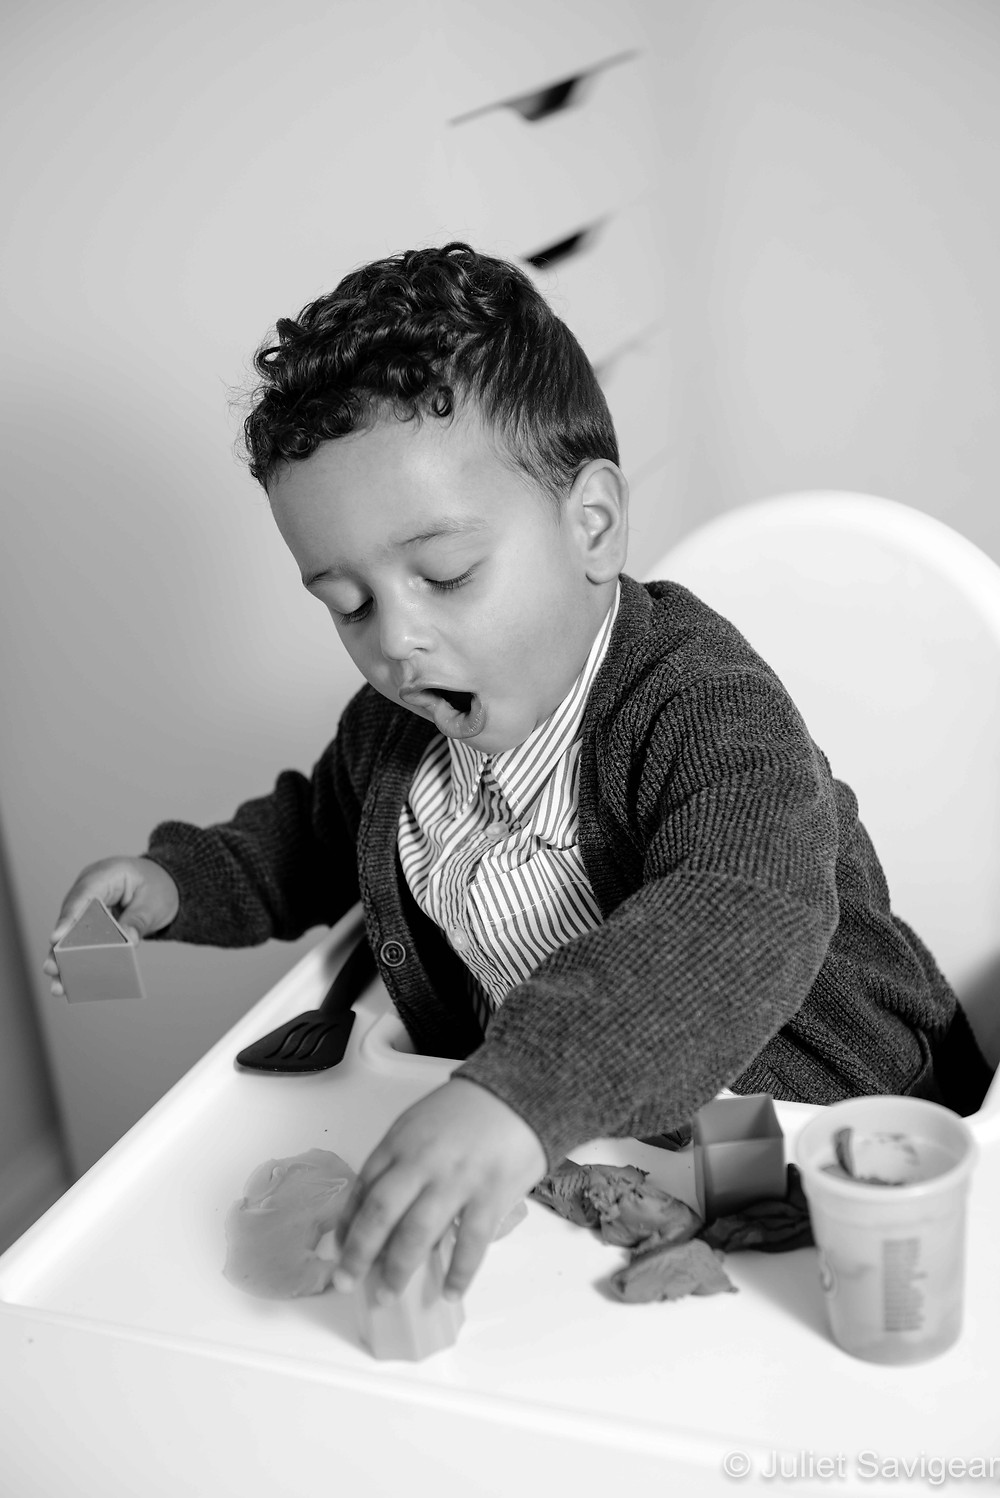 Boy playing with play doh